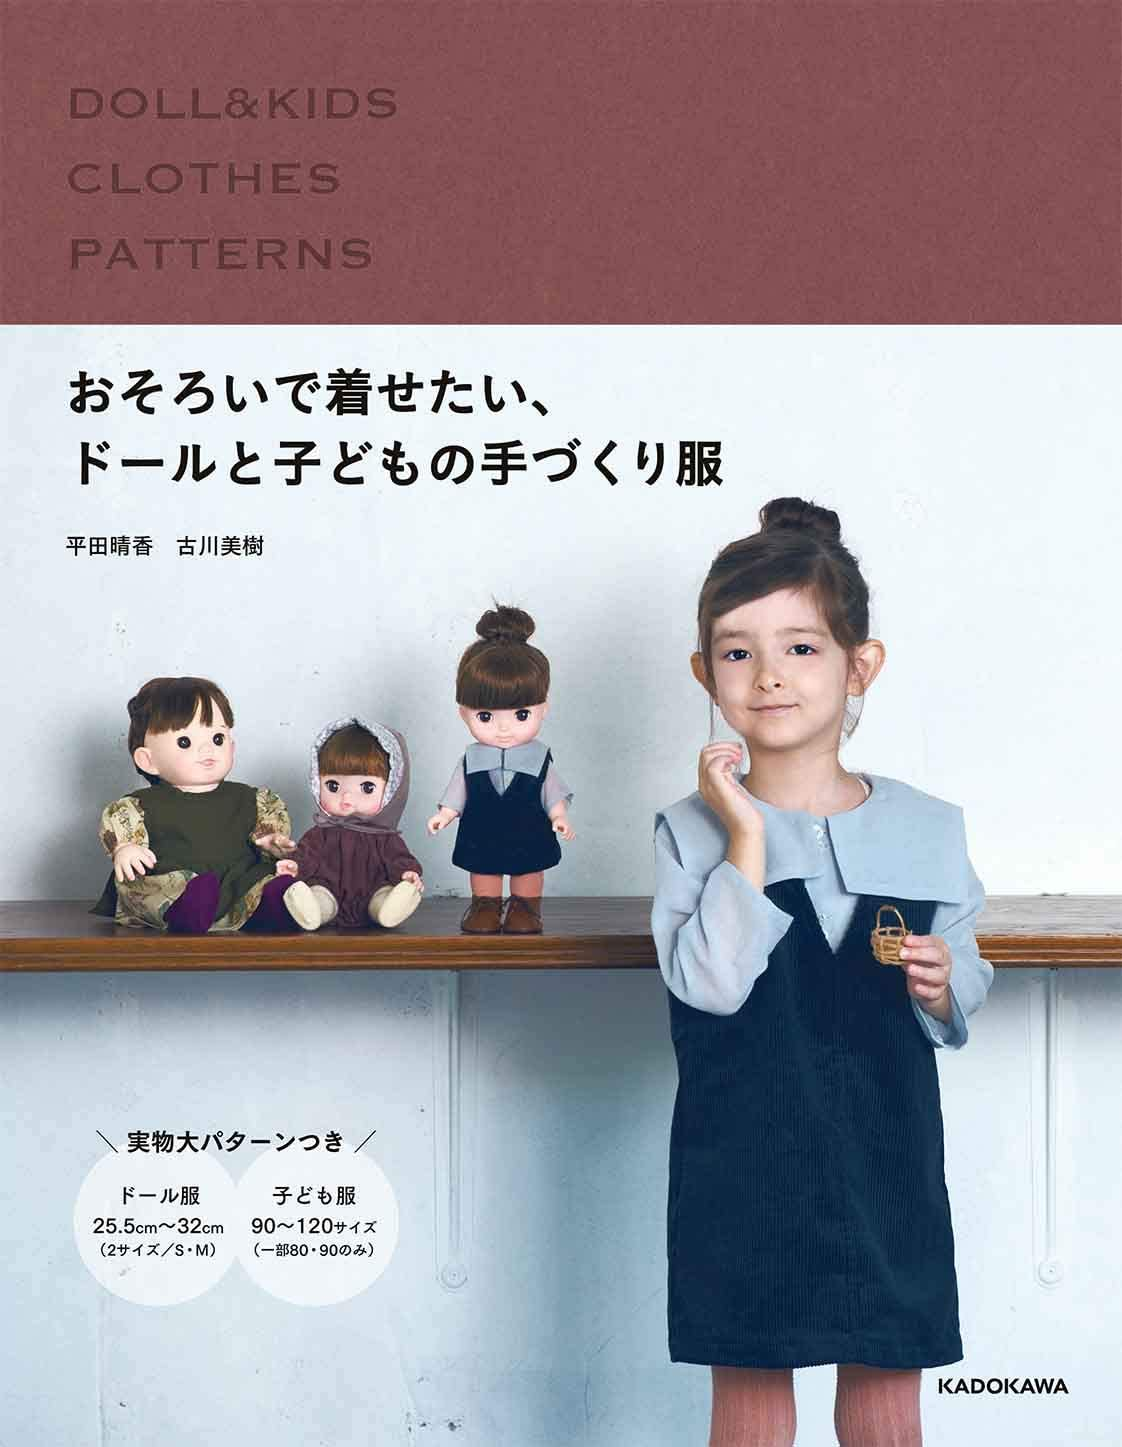 Miki Furukawa. Dolls and childrens handmade clothes that you want to wear together